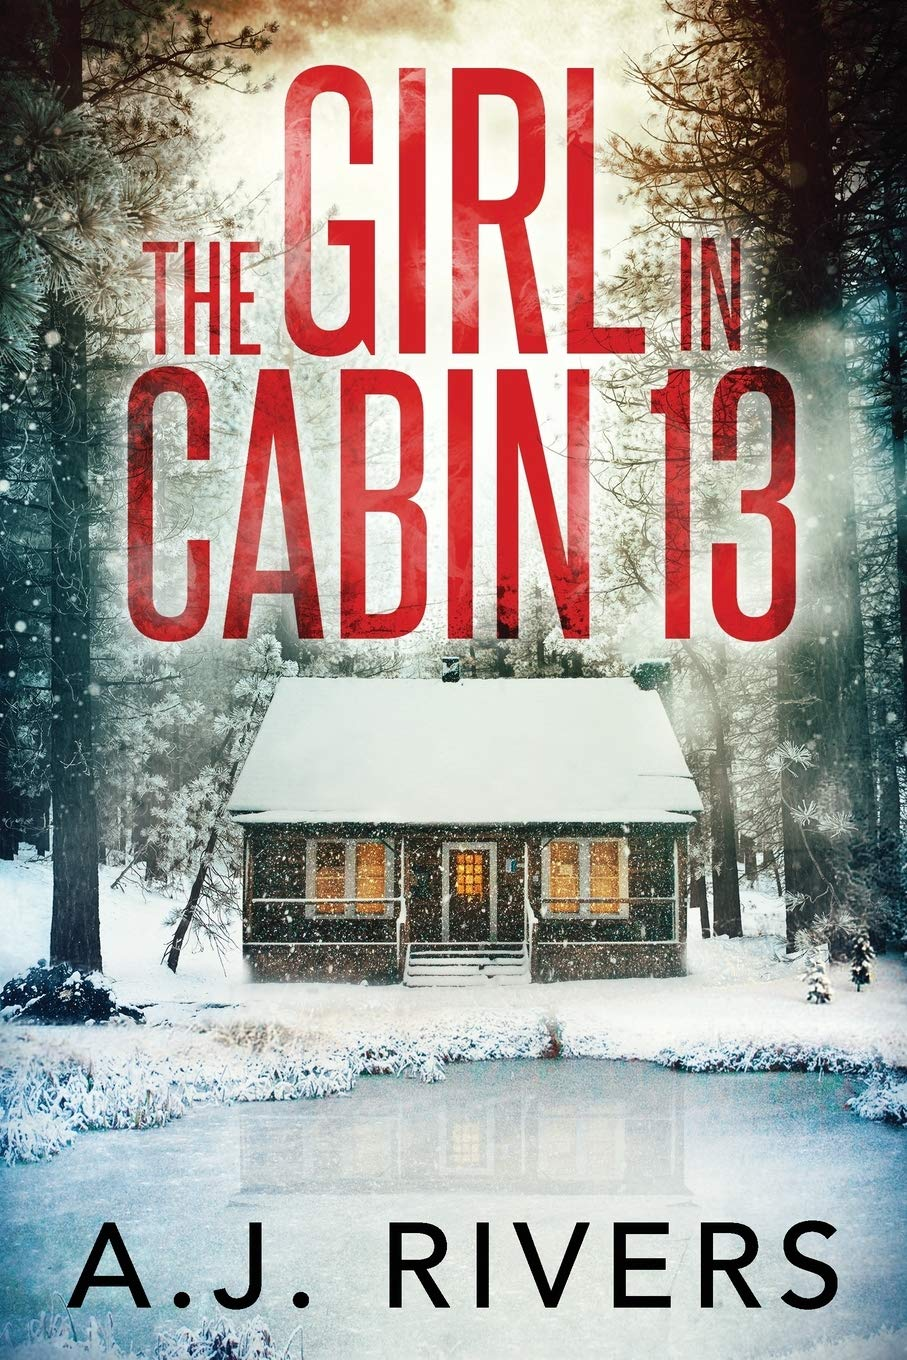 Download The Girl in Cabin 13 (2021) Bengali Dubbed (Voice Over) WEBRip 720p [Full Movie] 1XBET FREE on 1XCinema.com & KatMovieHD.sk